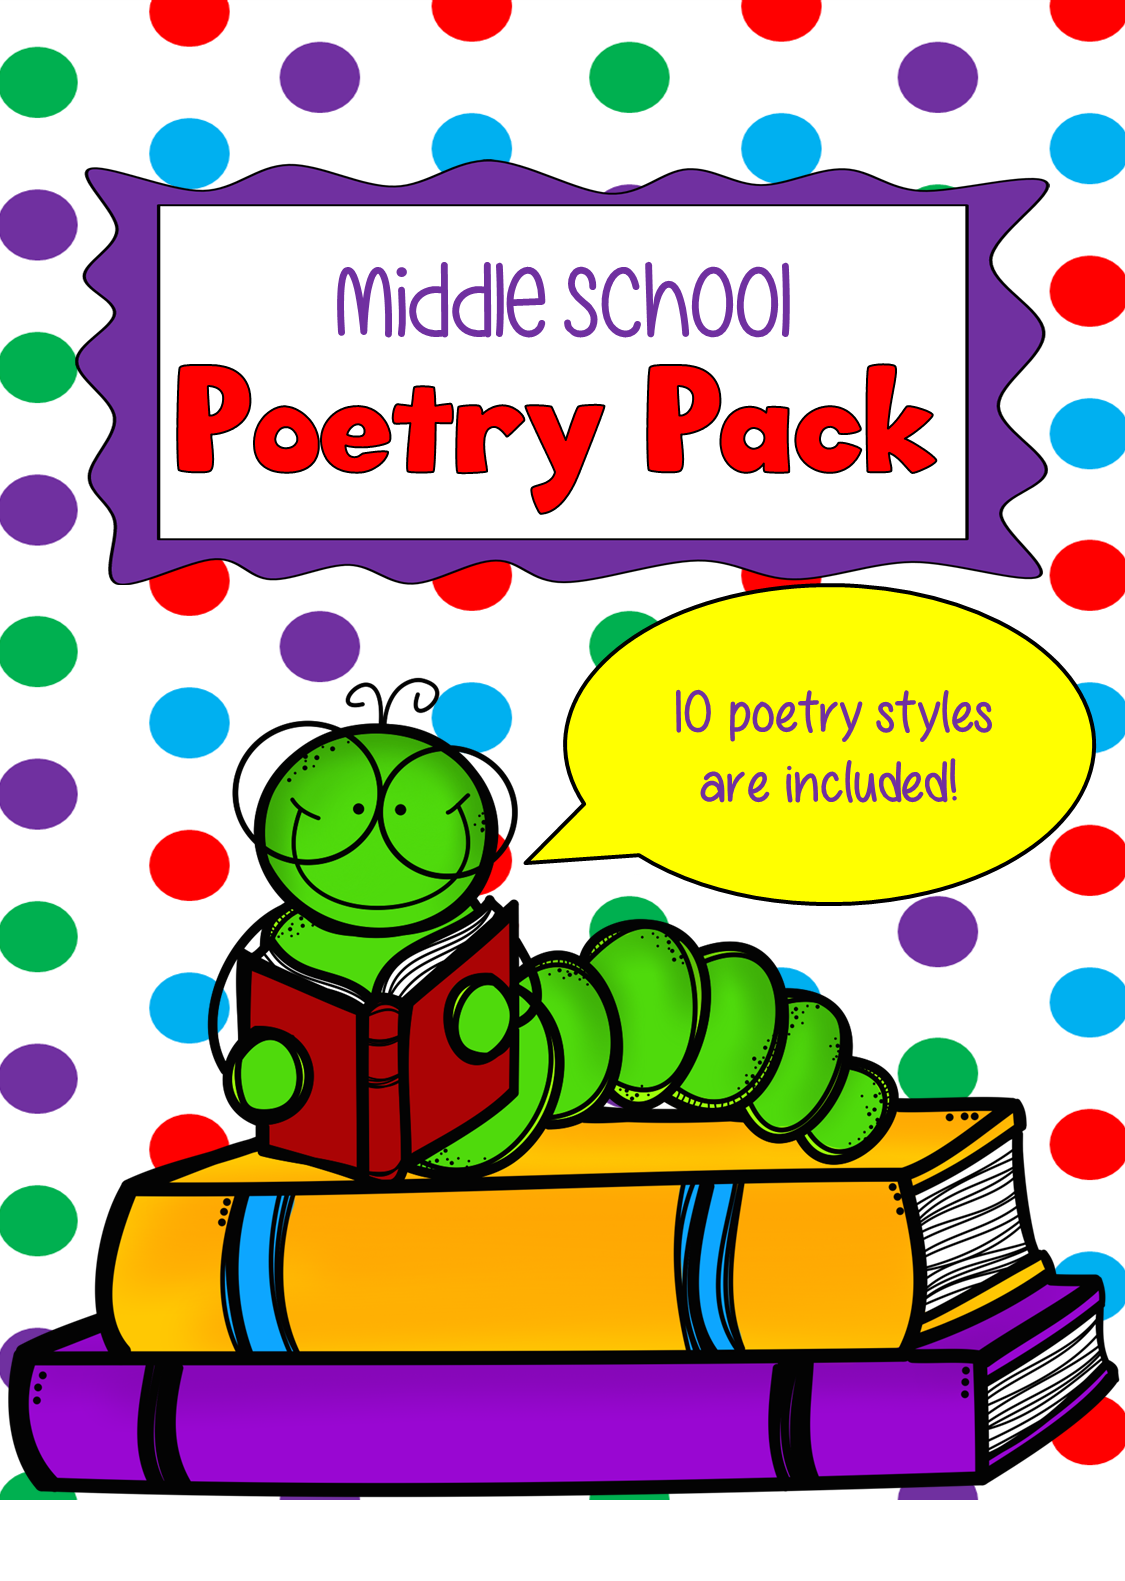 http://www.teacherspayteachers.com/Product/Middle-School-Poetry-Pack-Grades-5-9-NO-PREP-1349316